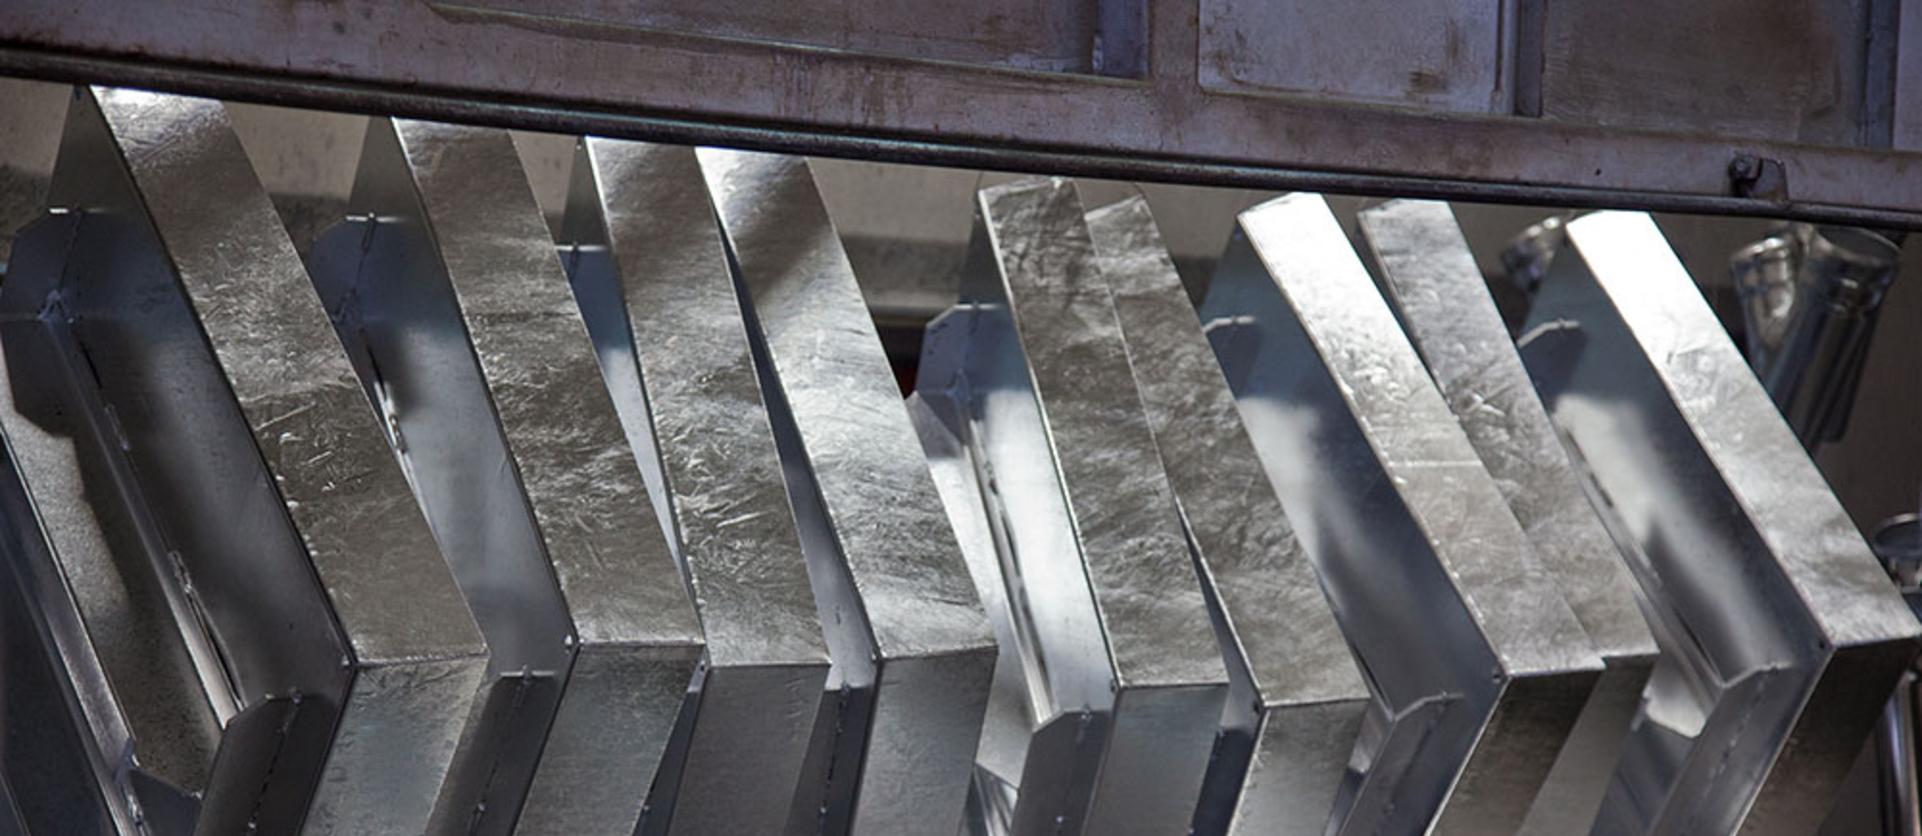 T And M Plating - Metal Plating, Electroplating, Jewelry